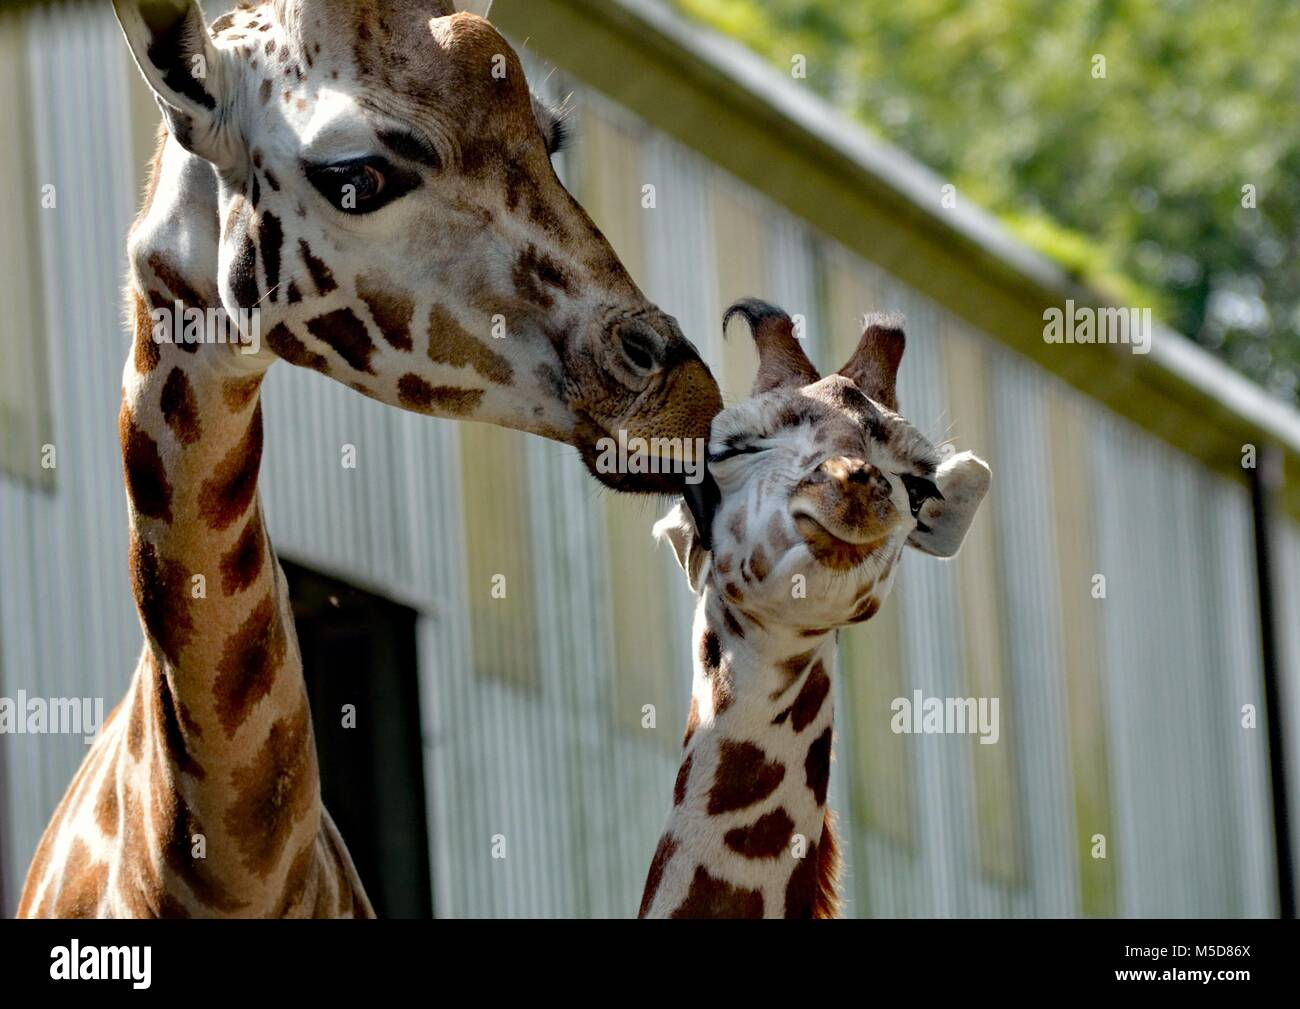 Baby giraffe pulling a funny face on being licked by its mother - Stock Image